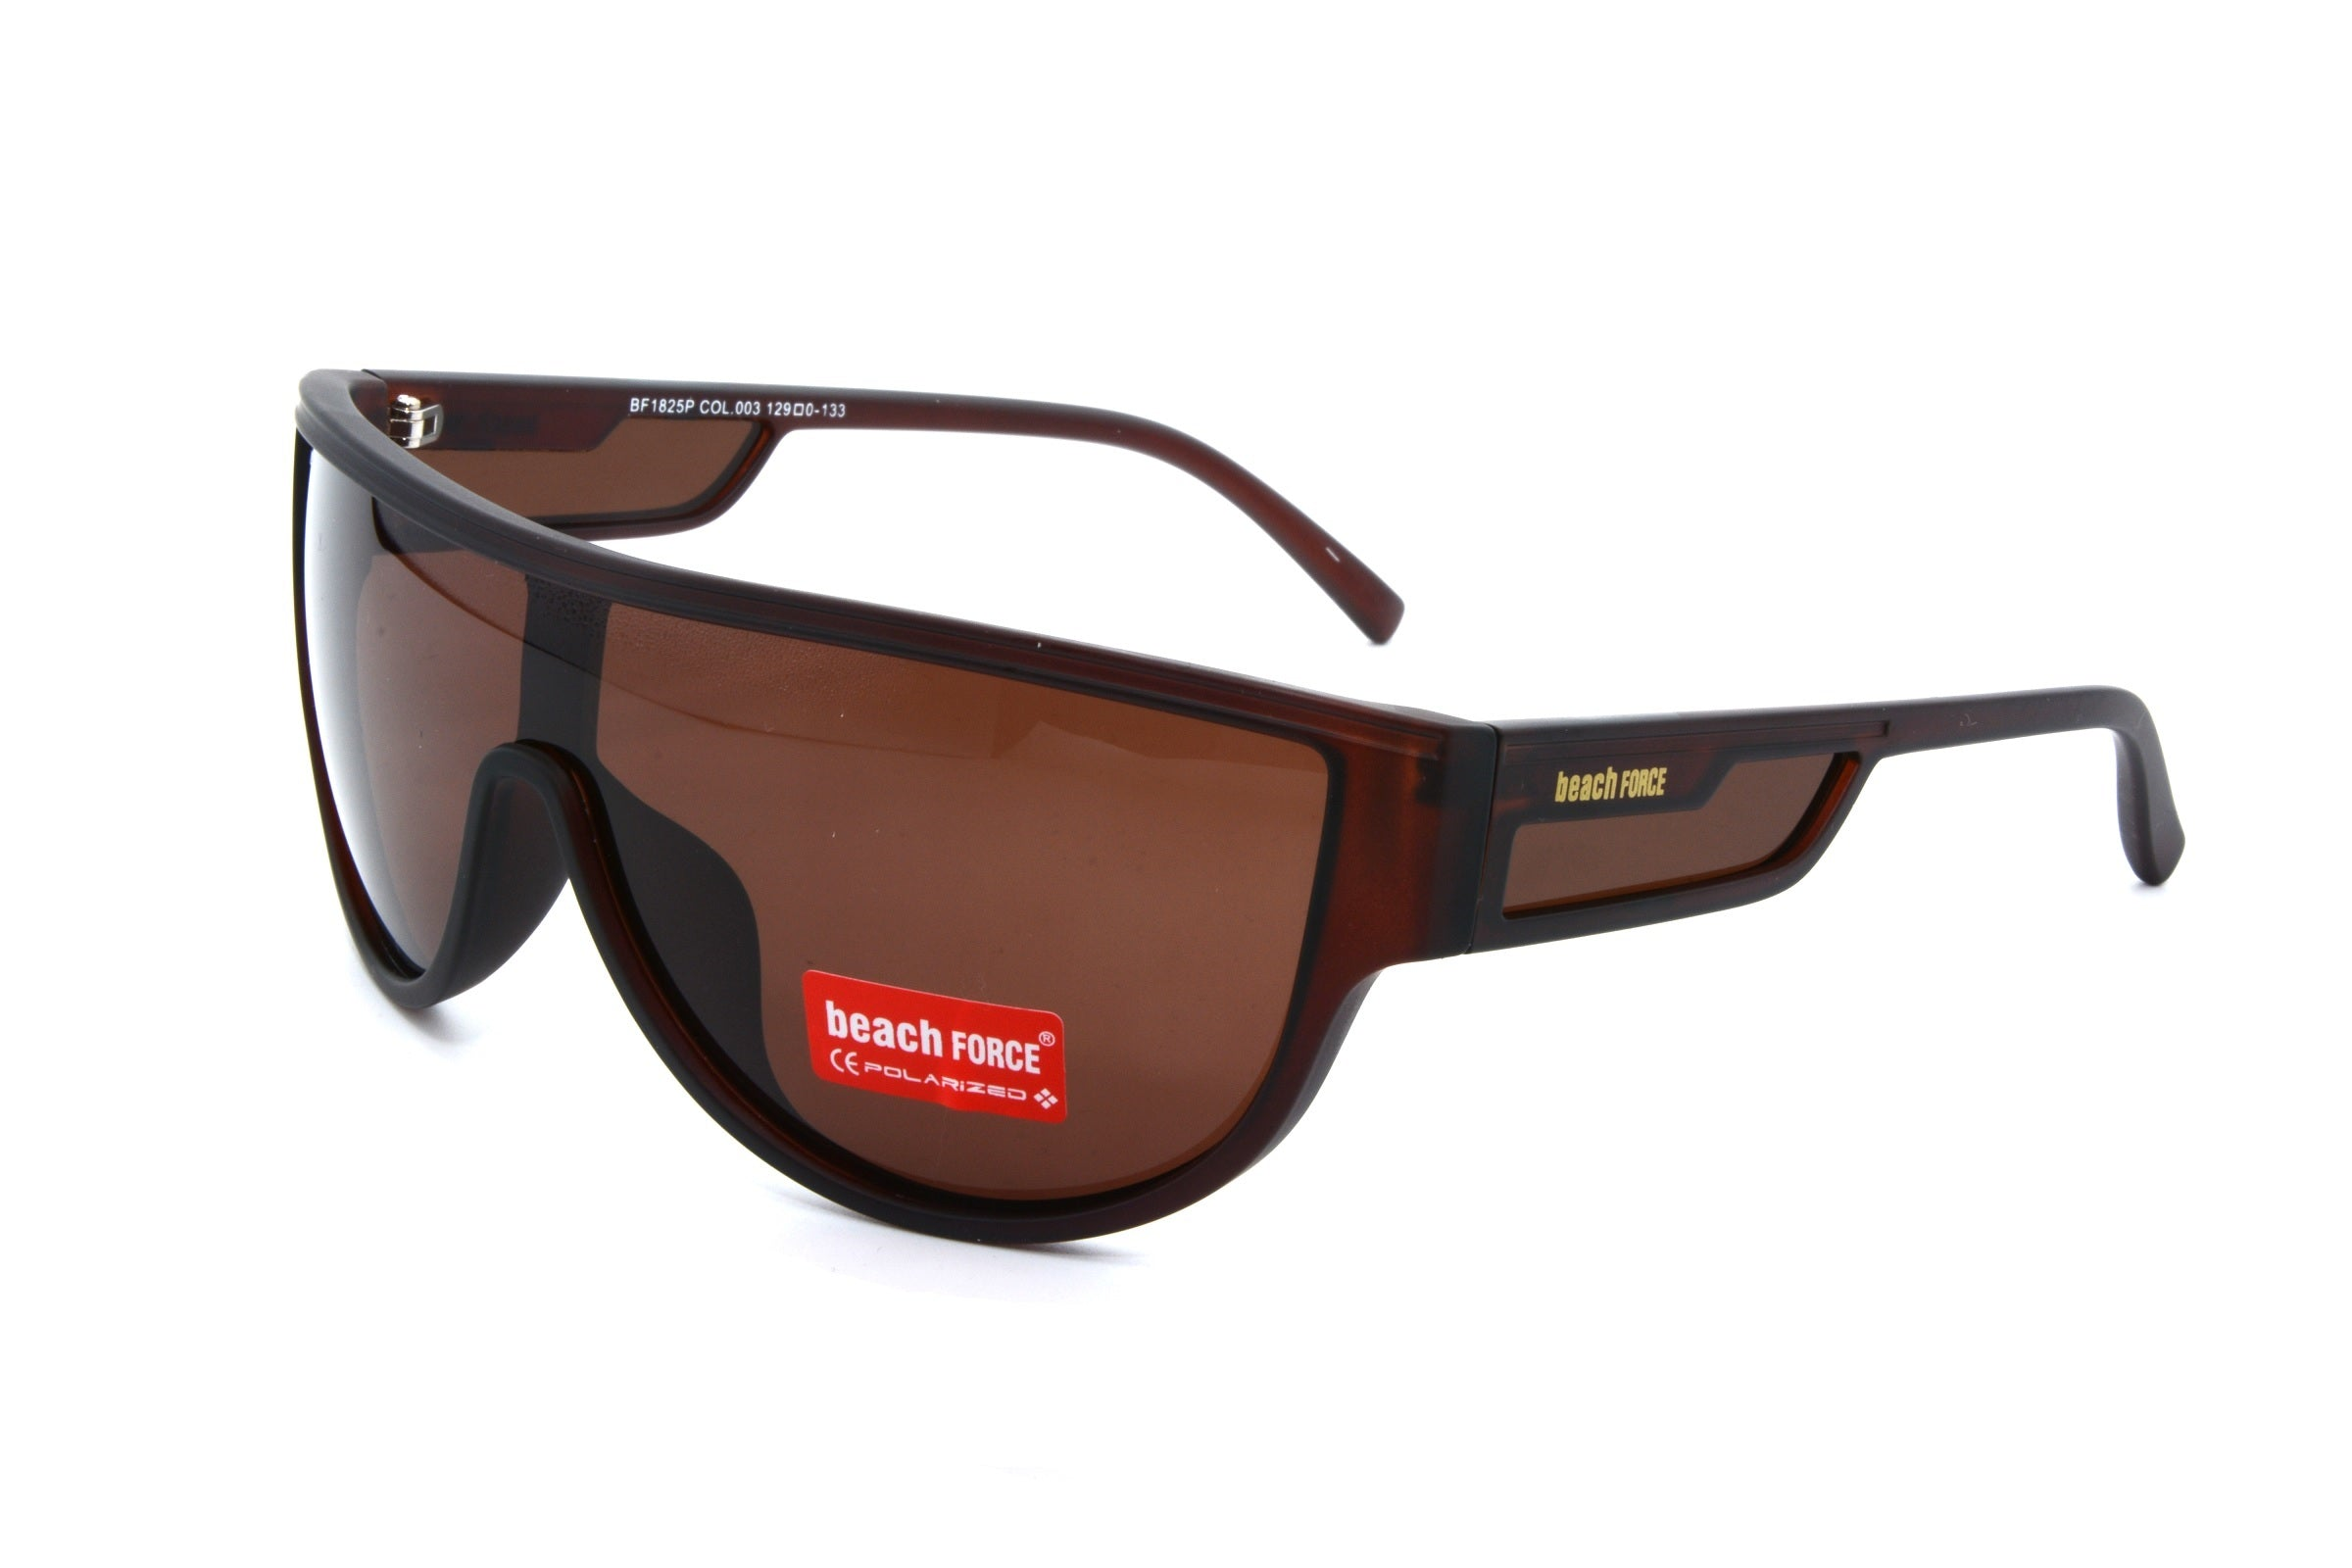 sunglasses Beach Force BF1825, 003